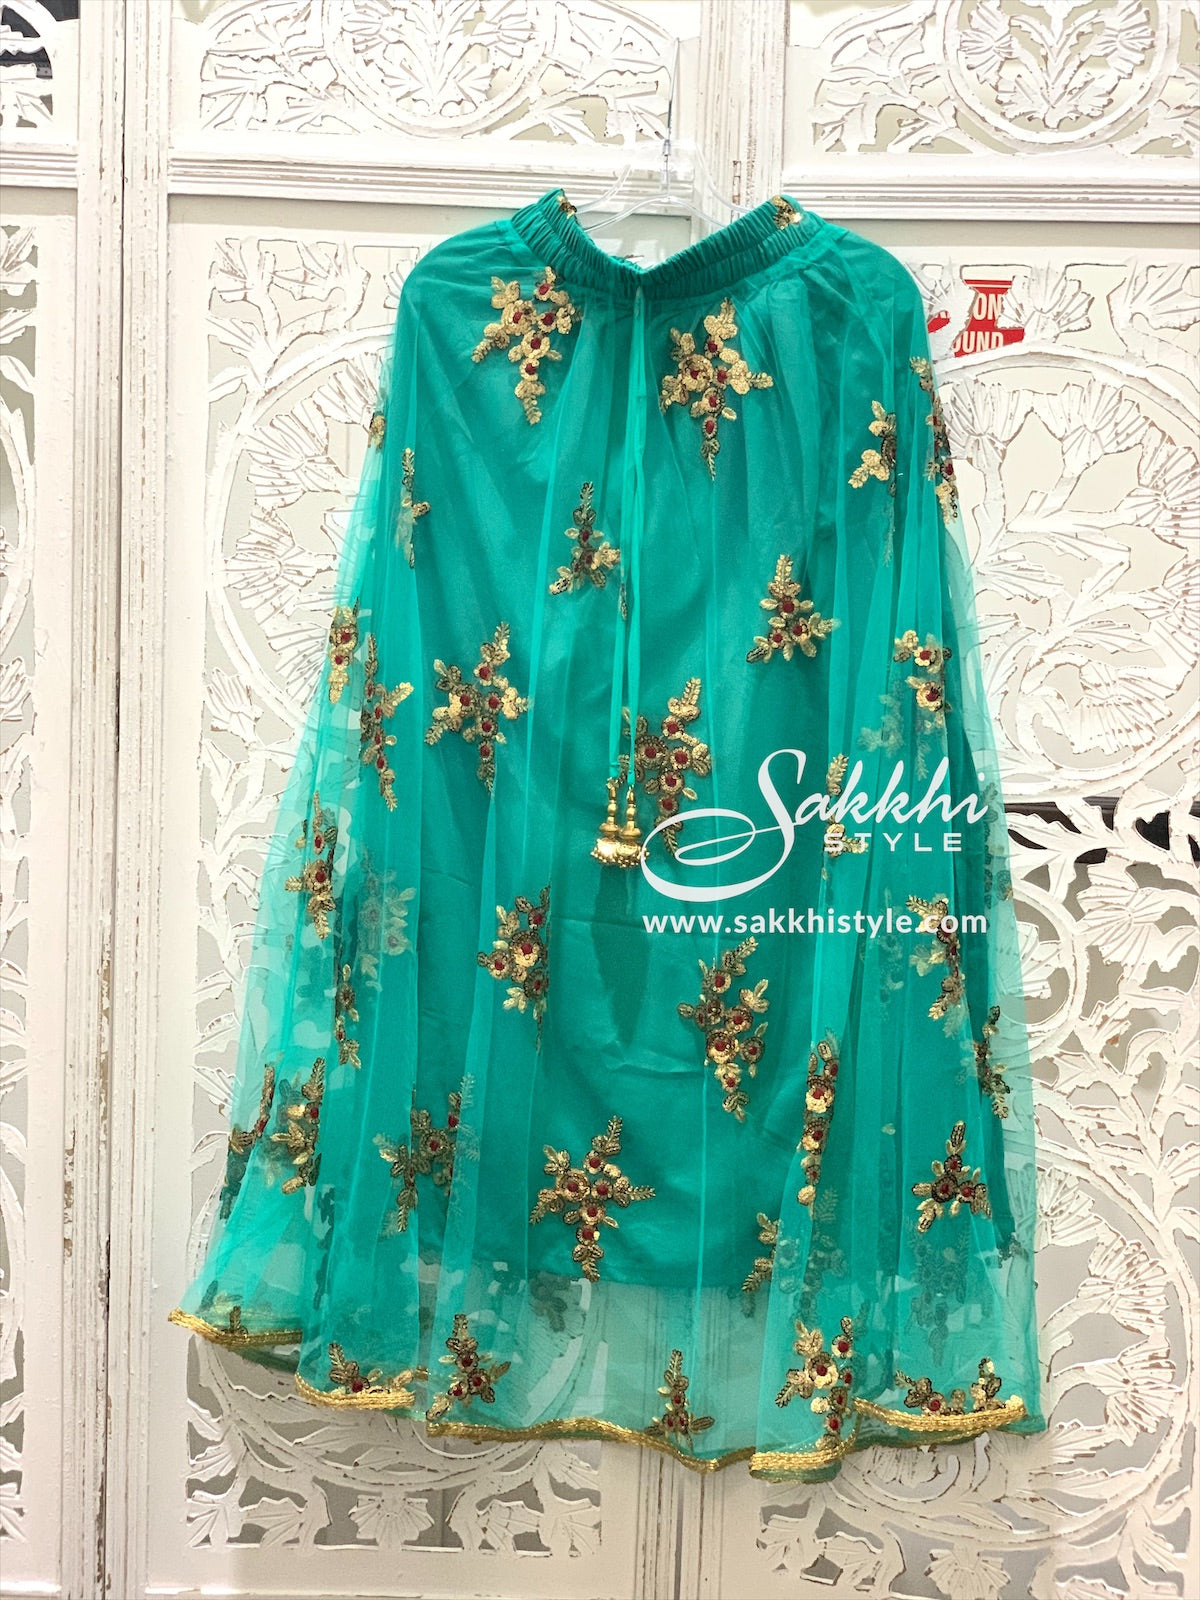 Turquoise Embroidered Skirt - Sakkhi Style